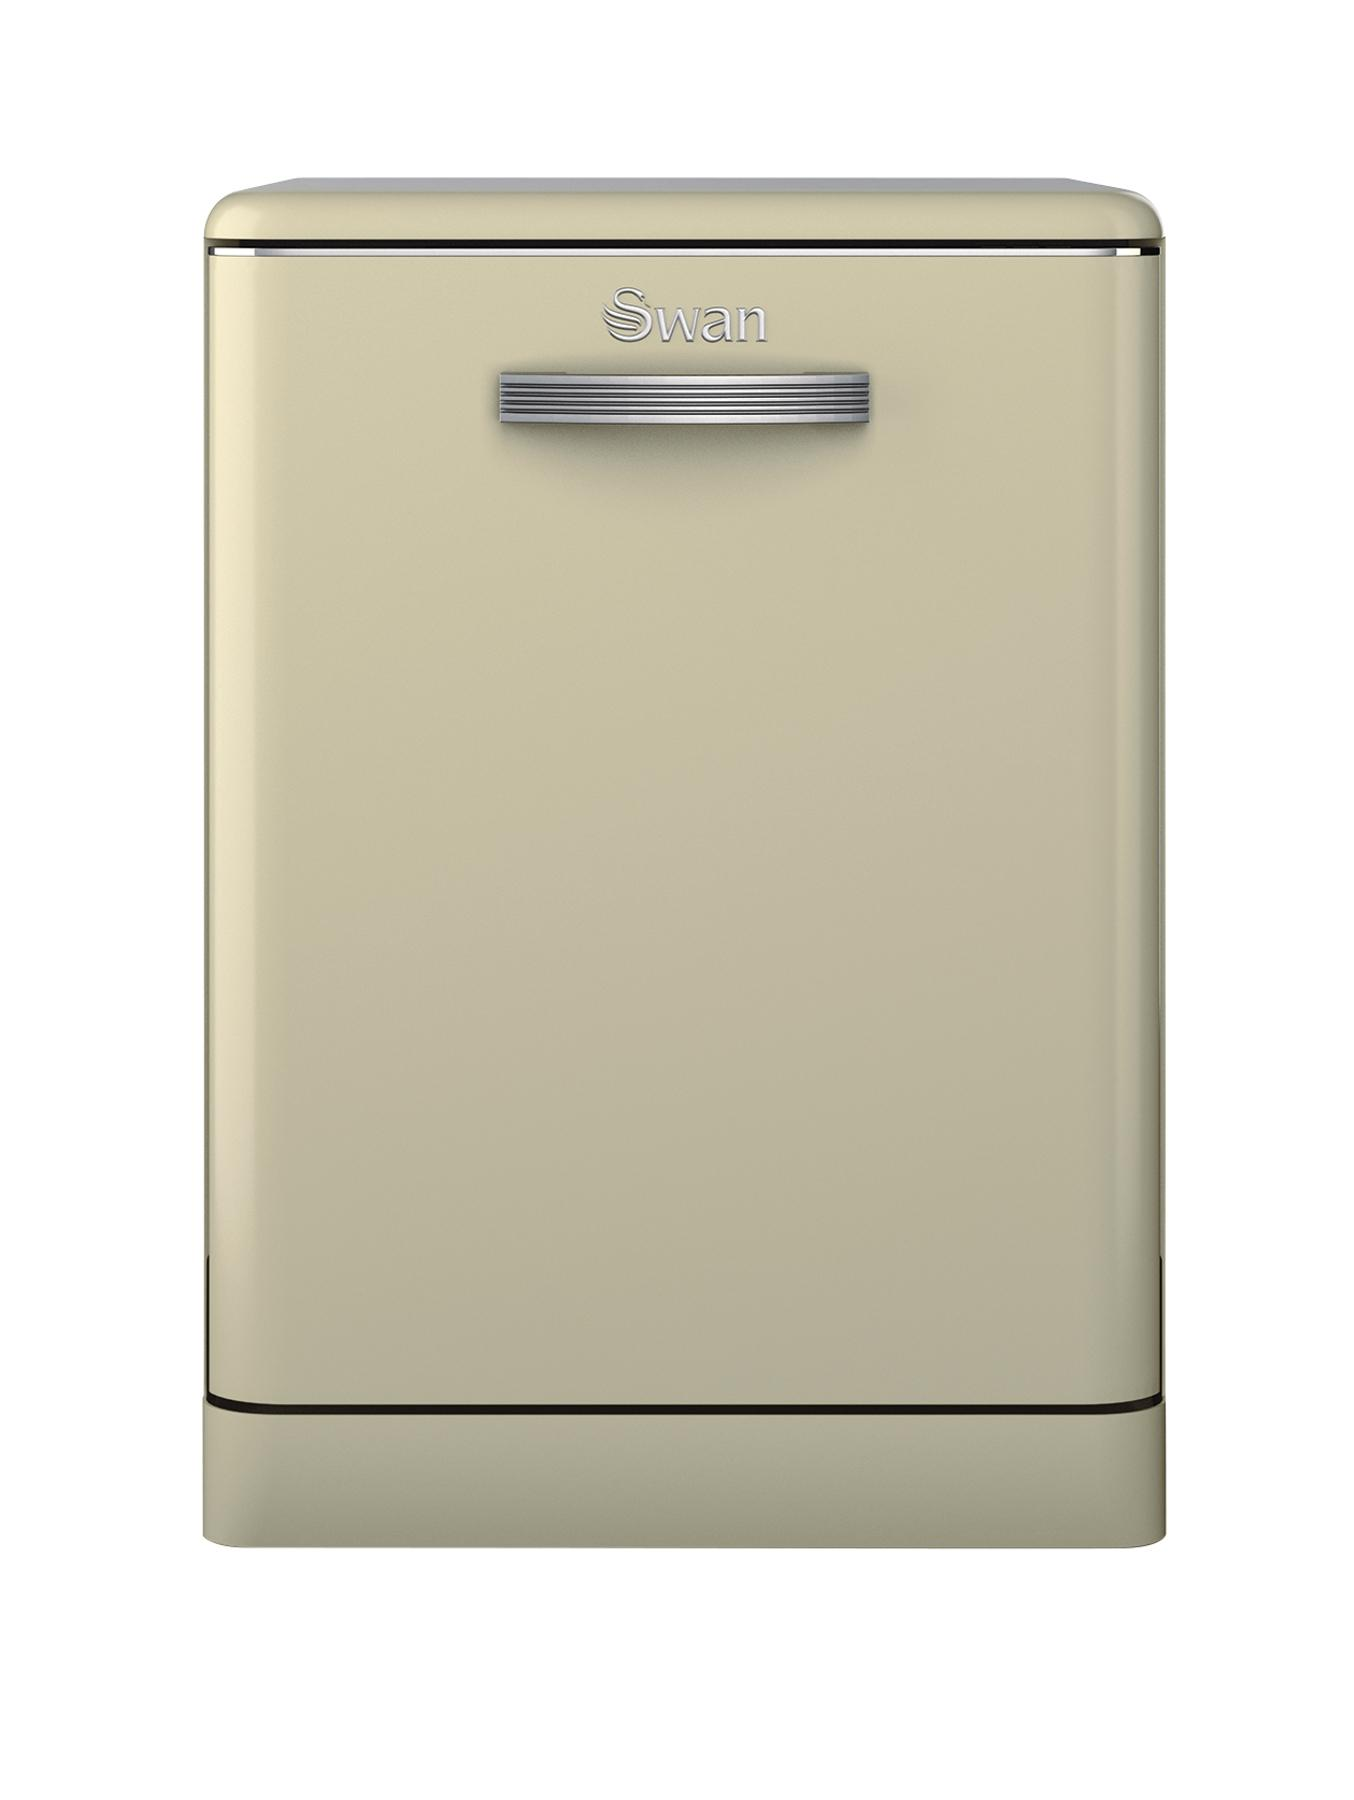 SDW7040CN Retro Dishwasher - Cream